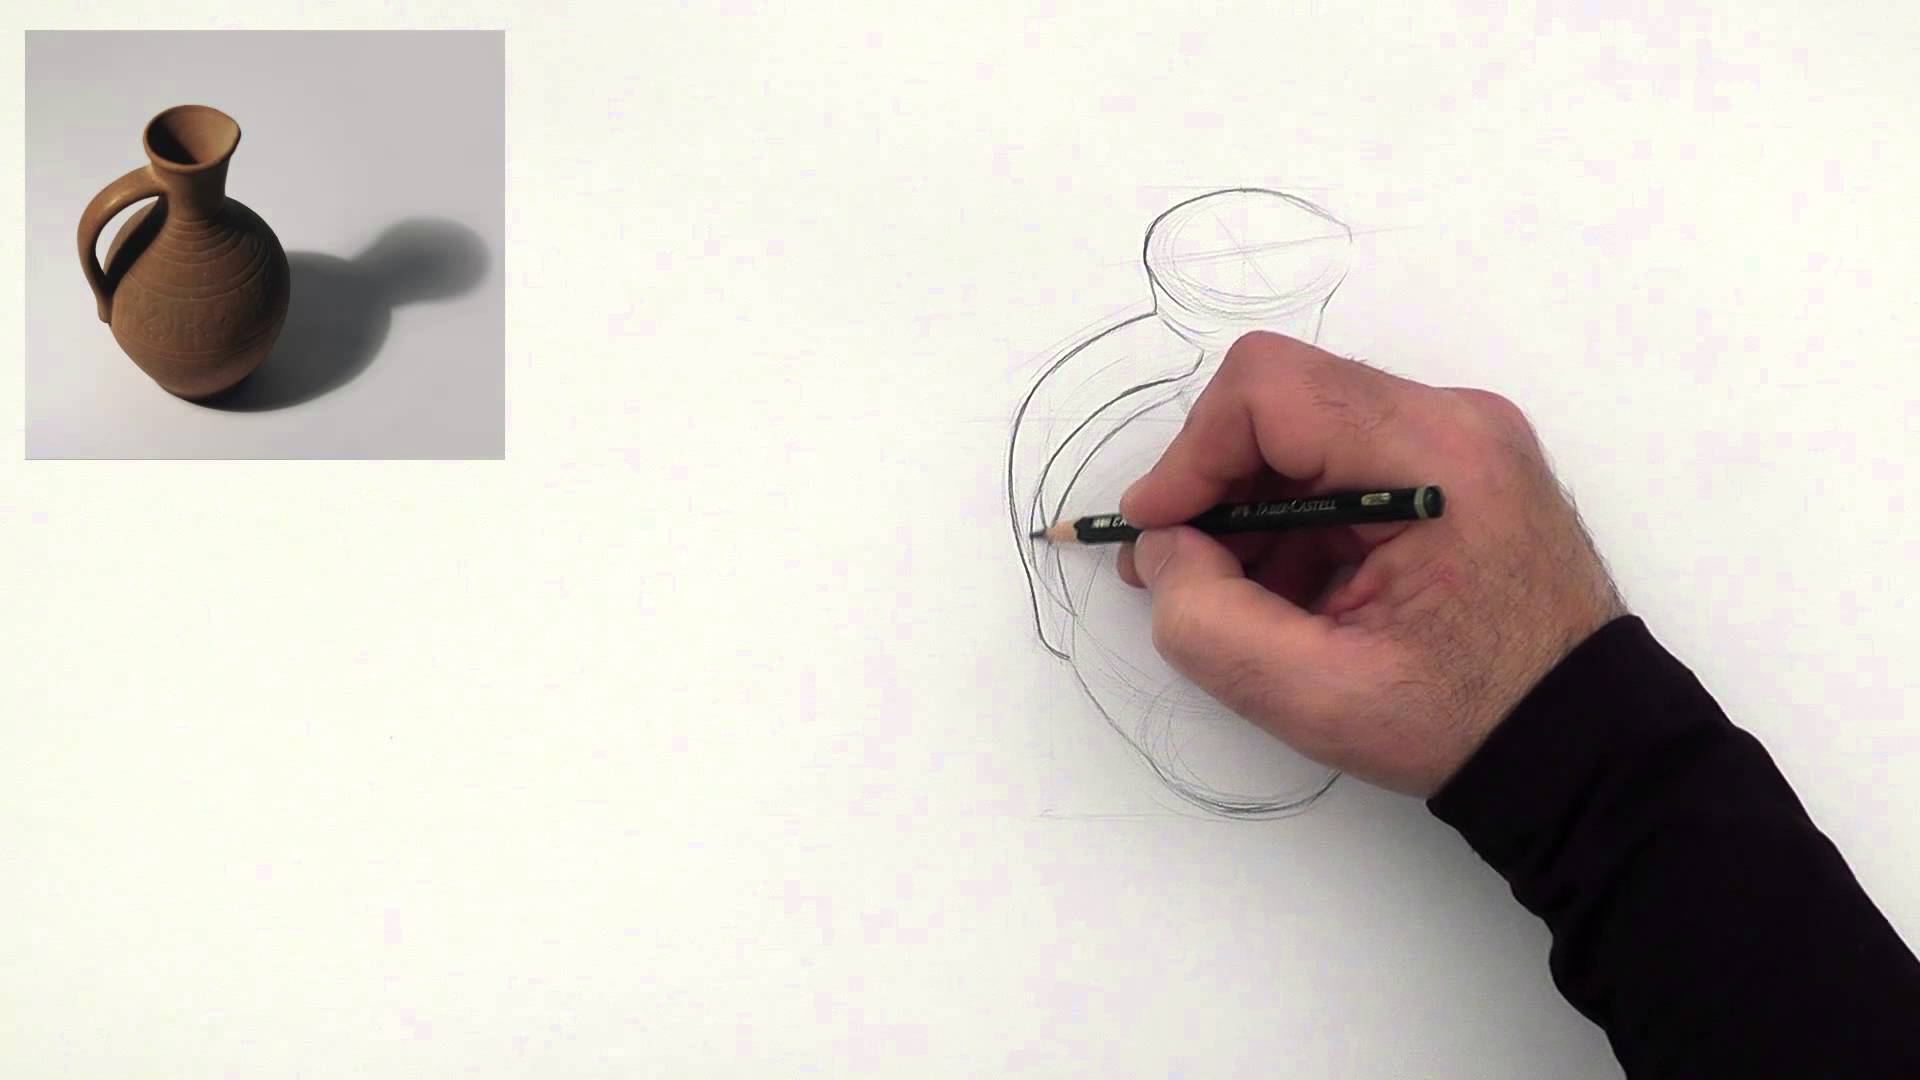 Drawn sphere light on Draw to spherical ceramic pitcher